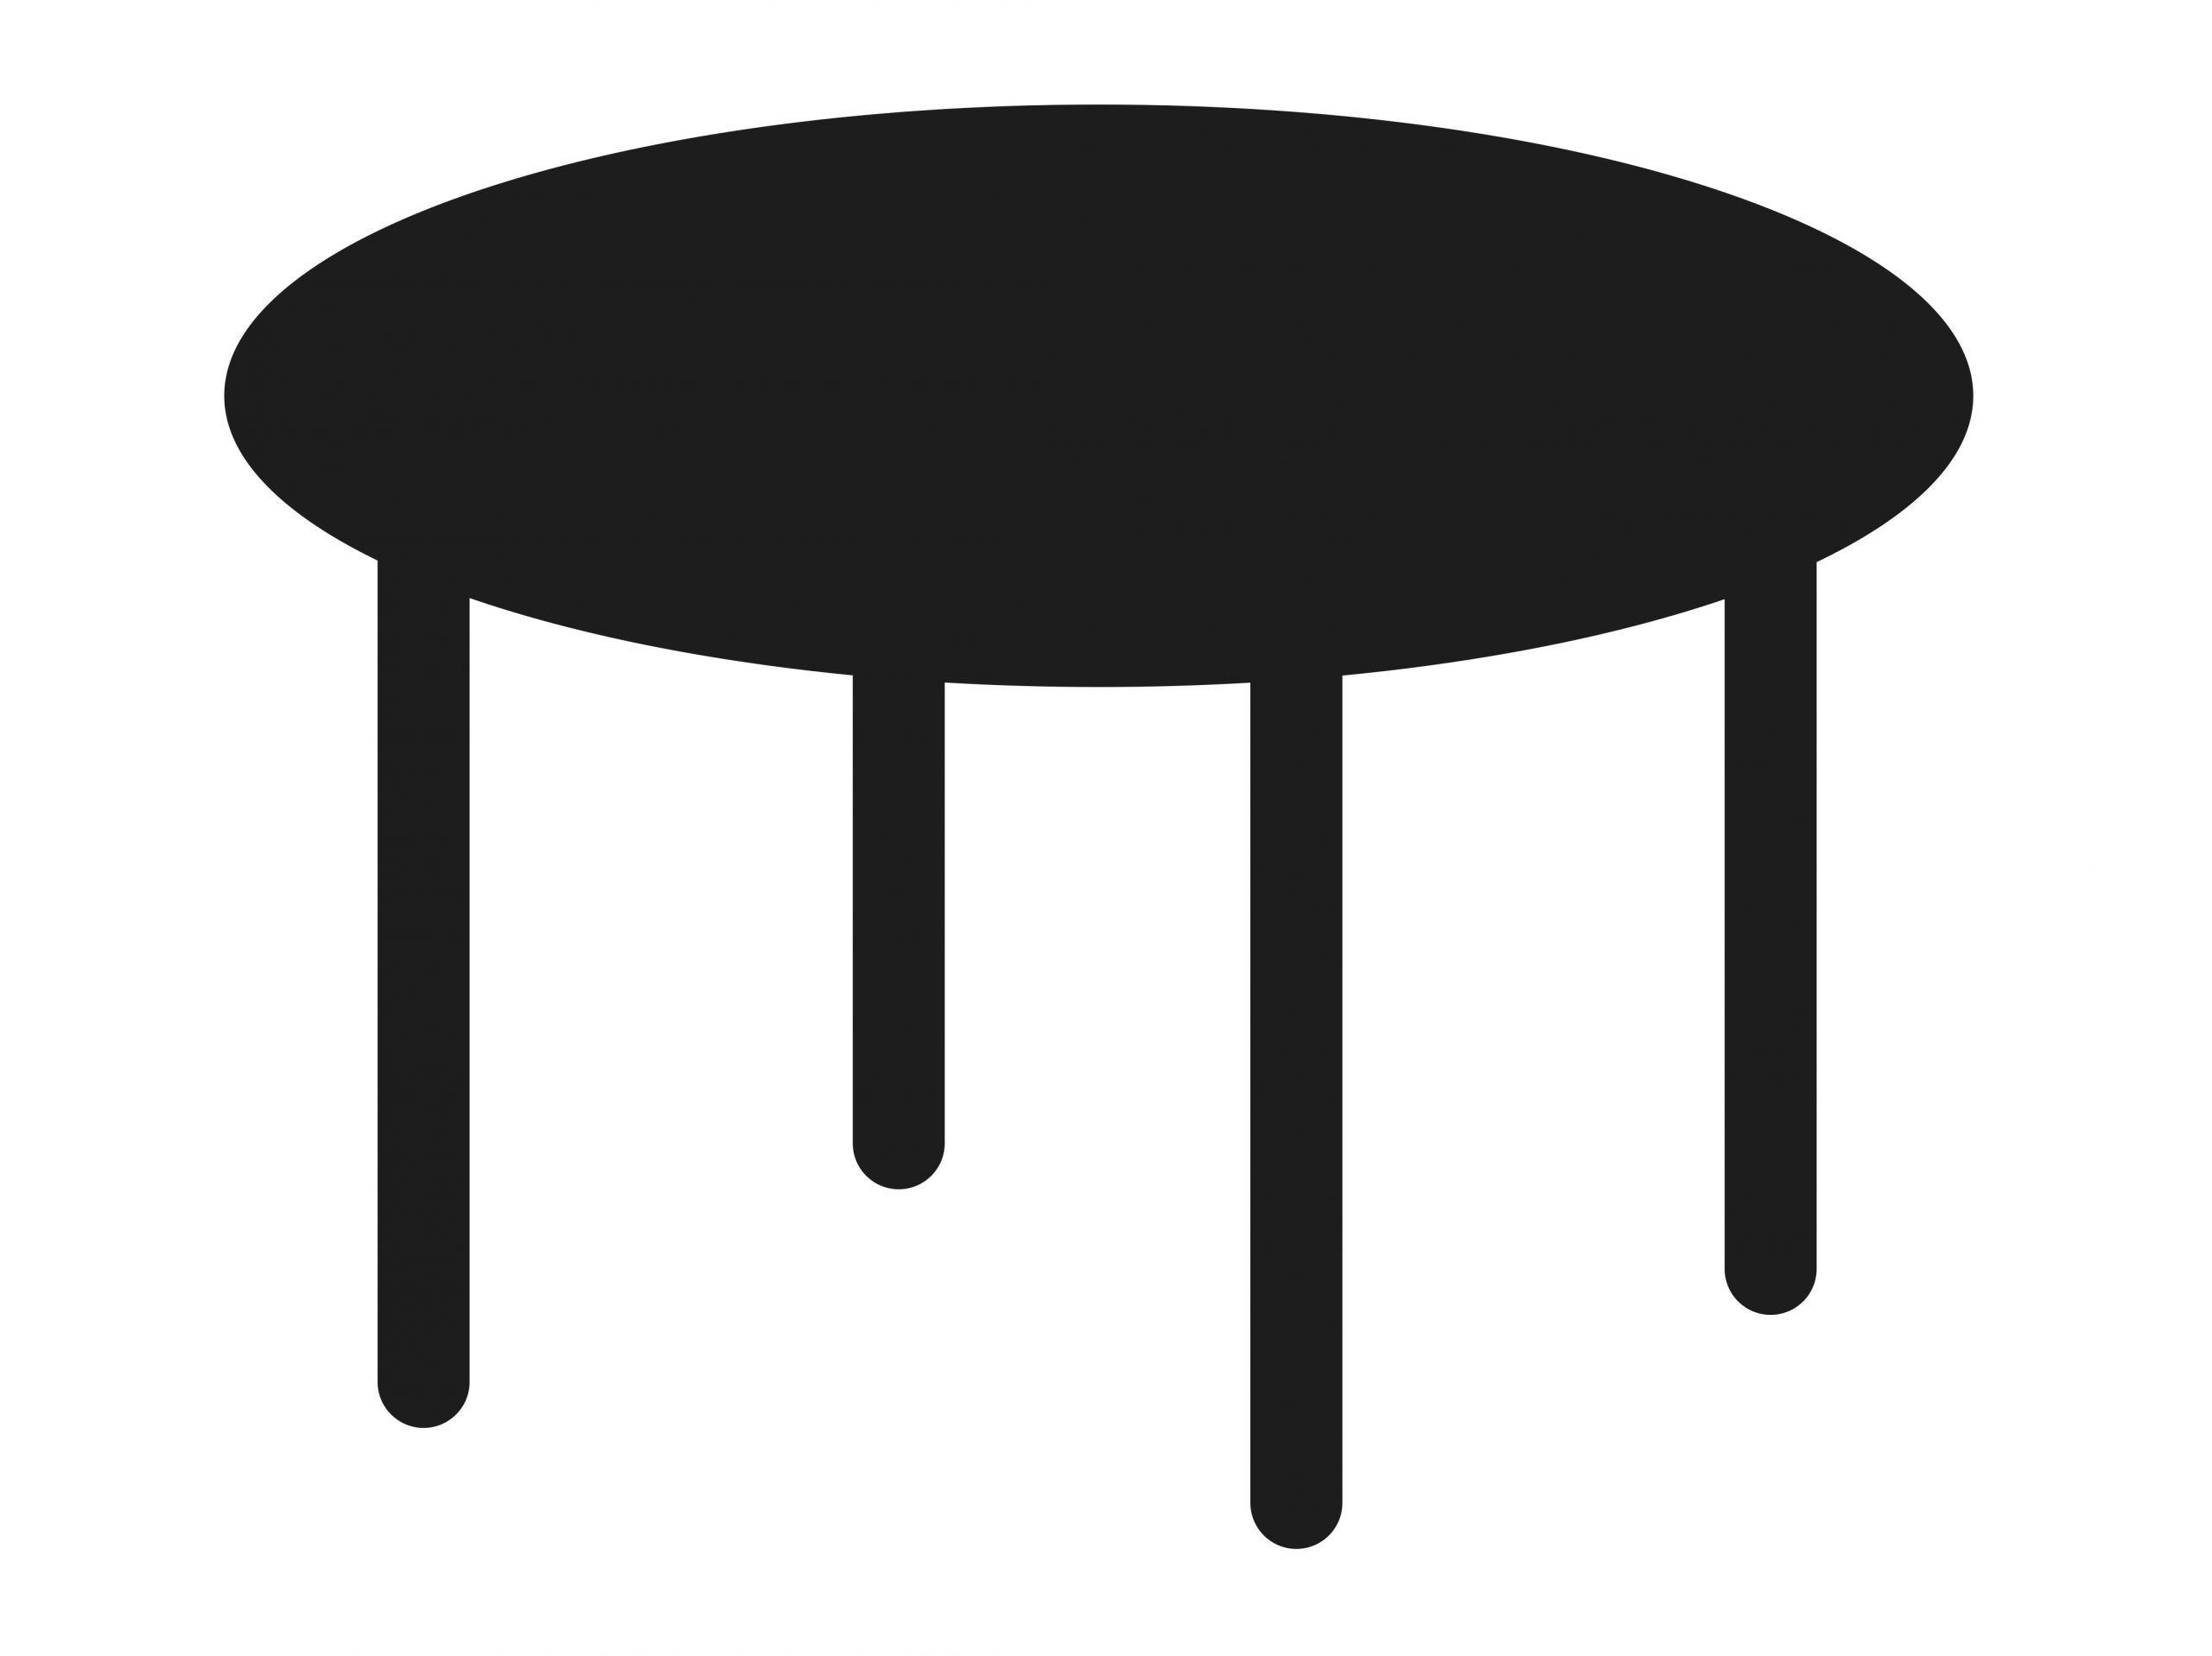 Round table with 4 legs